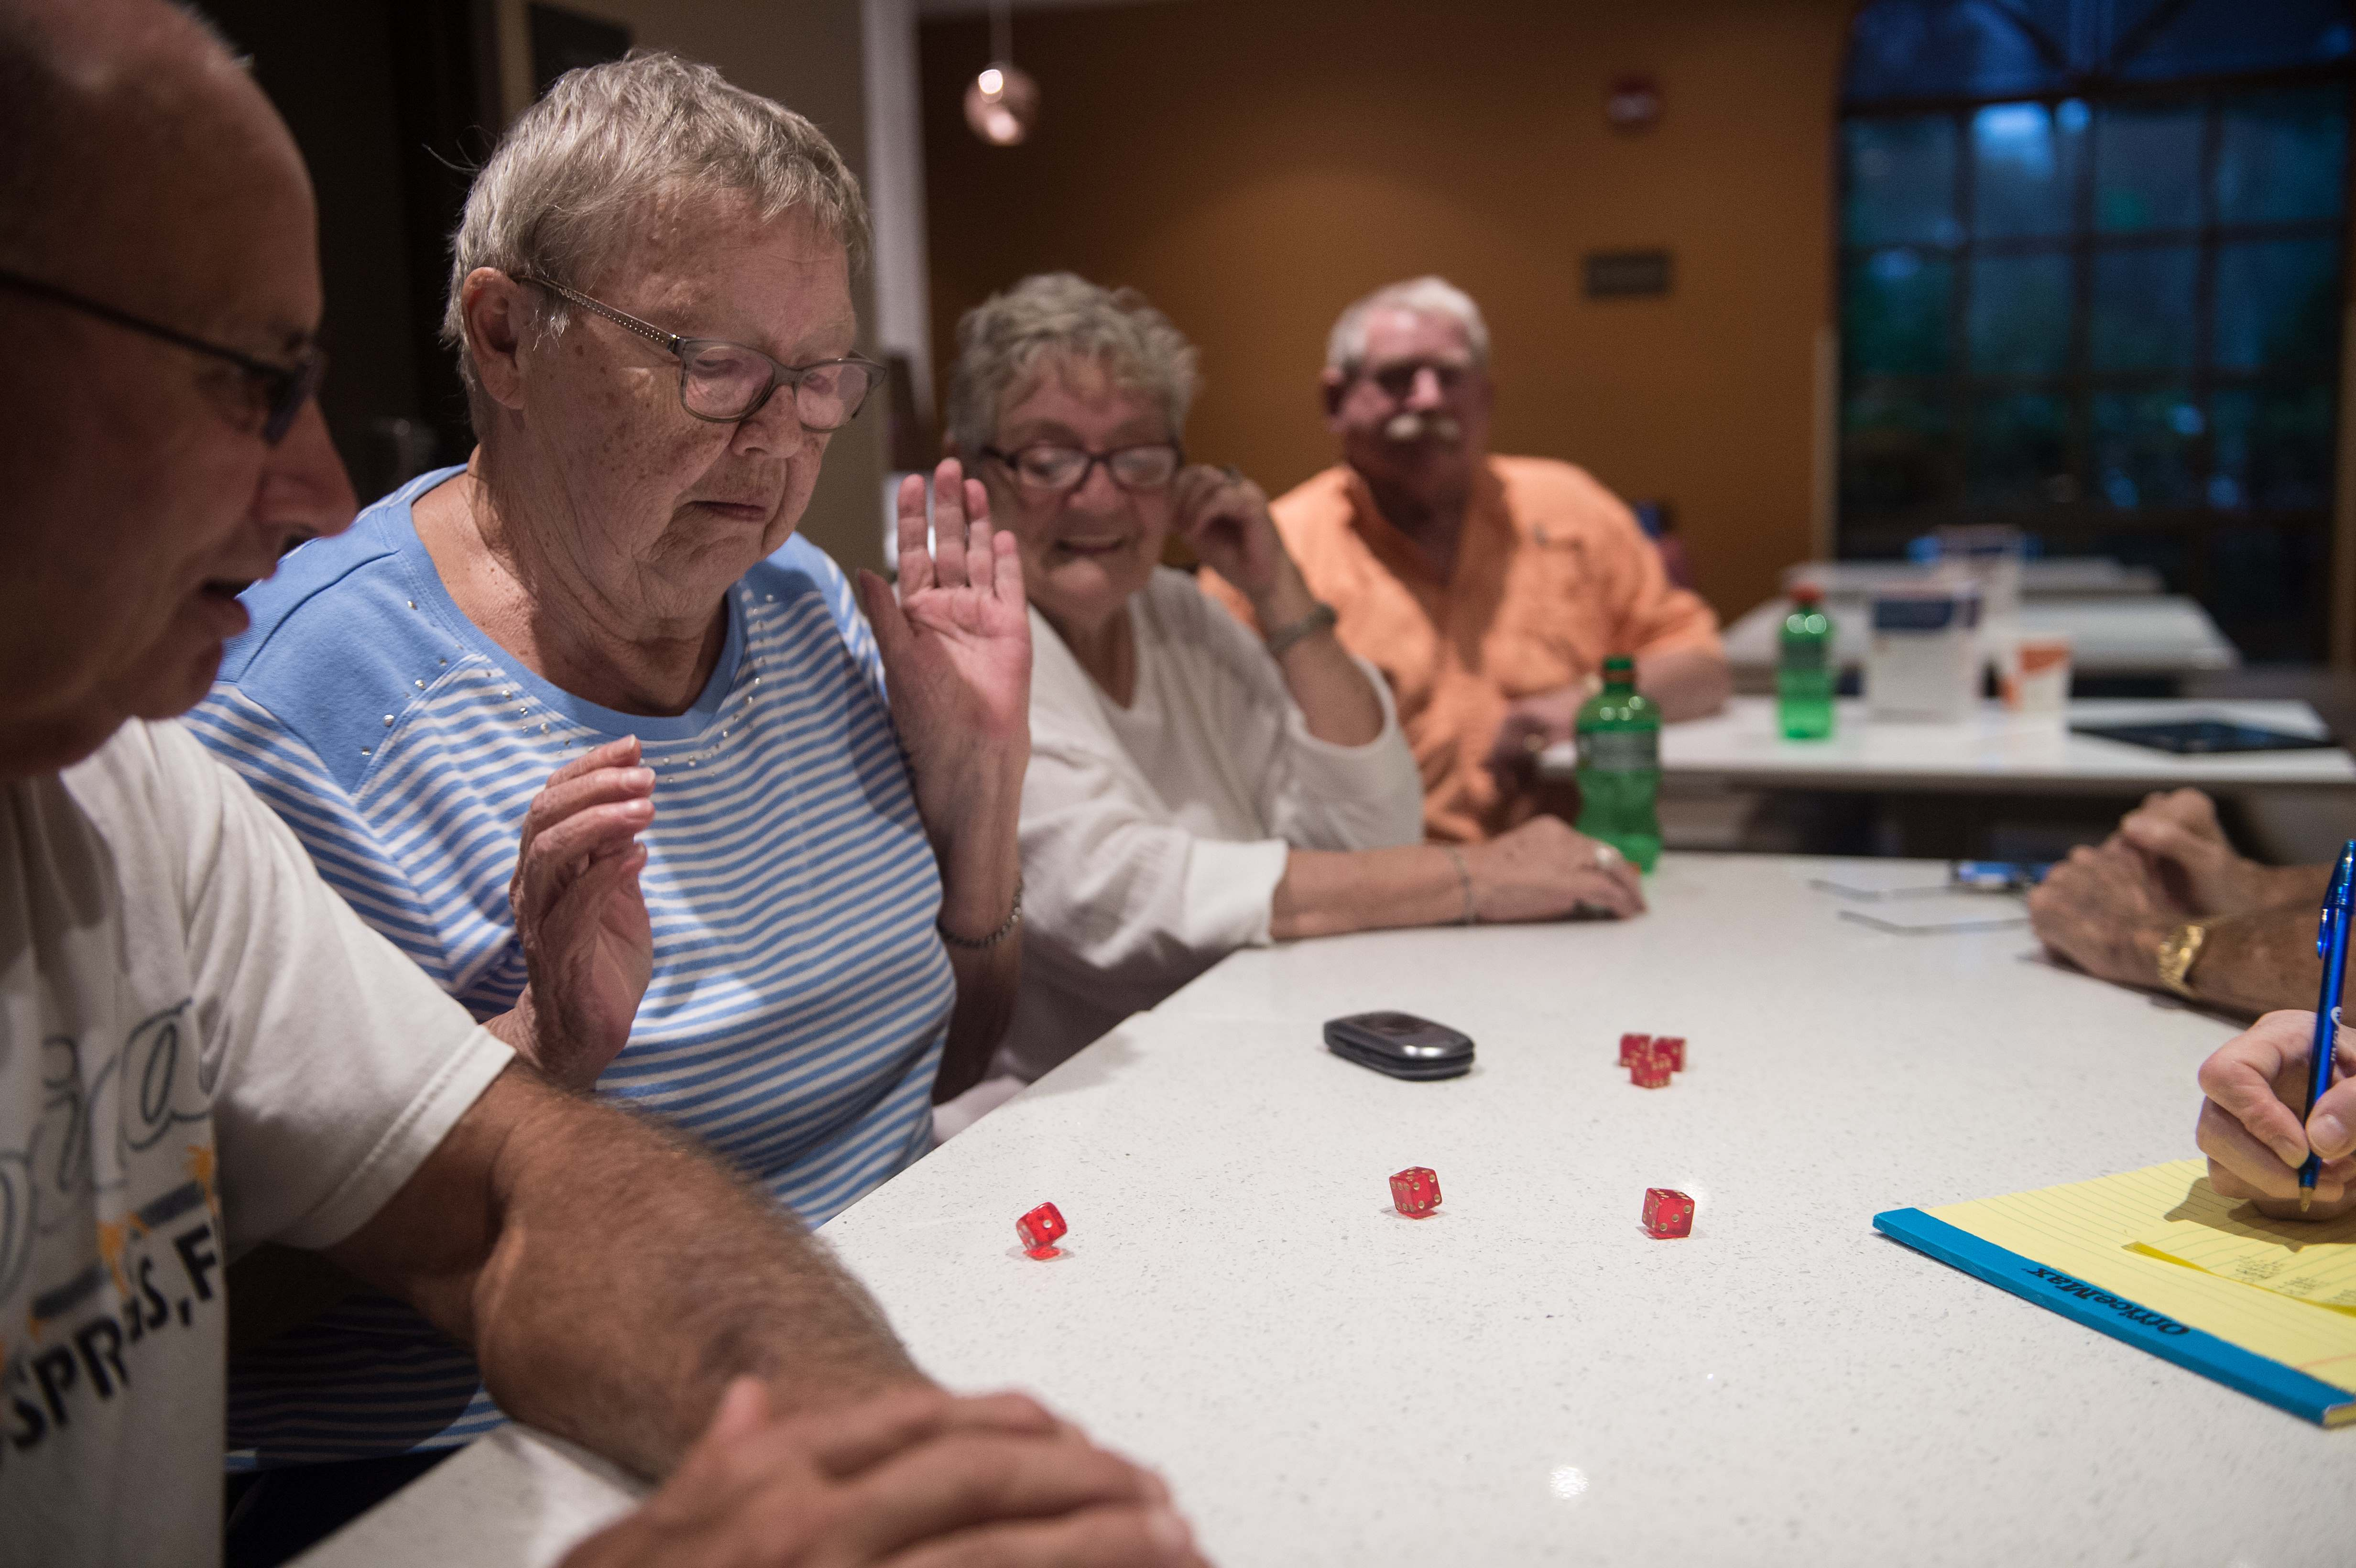 Retirees from nearby a mobile home community play dice in a hotel where they sought shelter in Bonita Springs, Florida as Hurricane Irma begins to hit Florida on Sept. 9, 2017. (NICHOLAS KAMM/AFP/Getty Images)